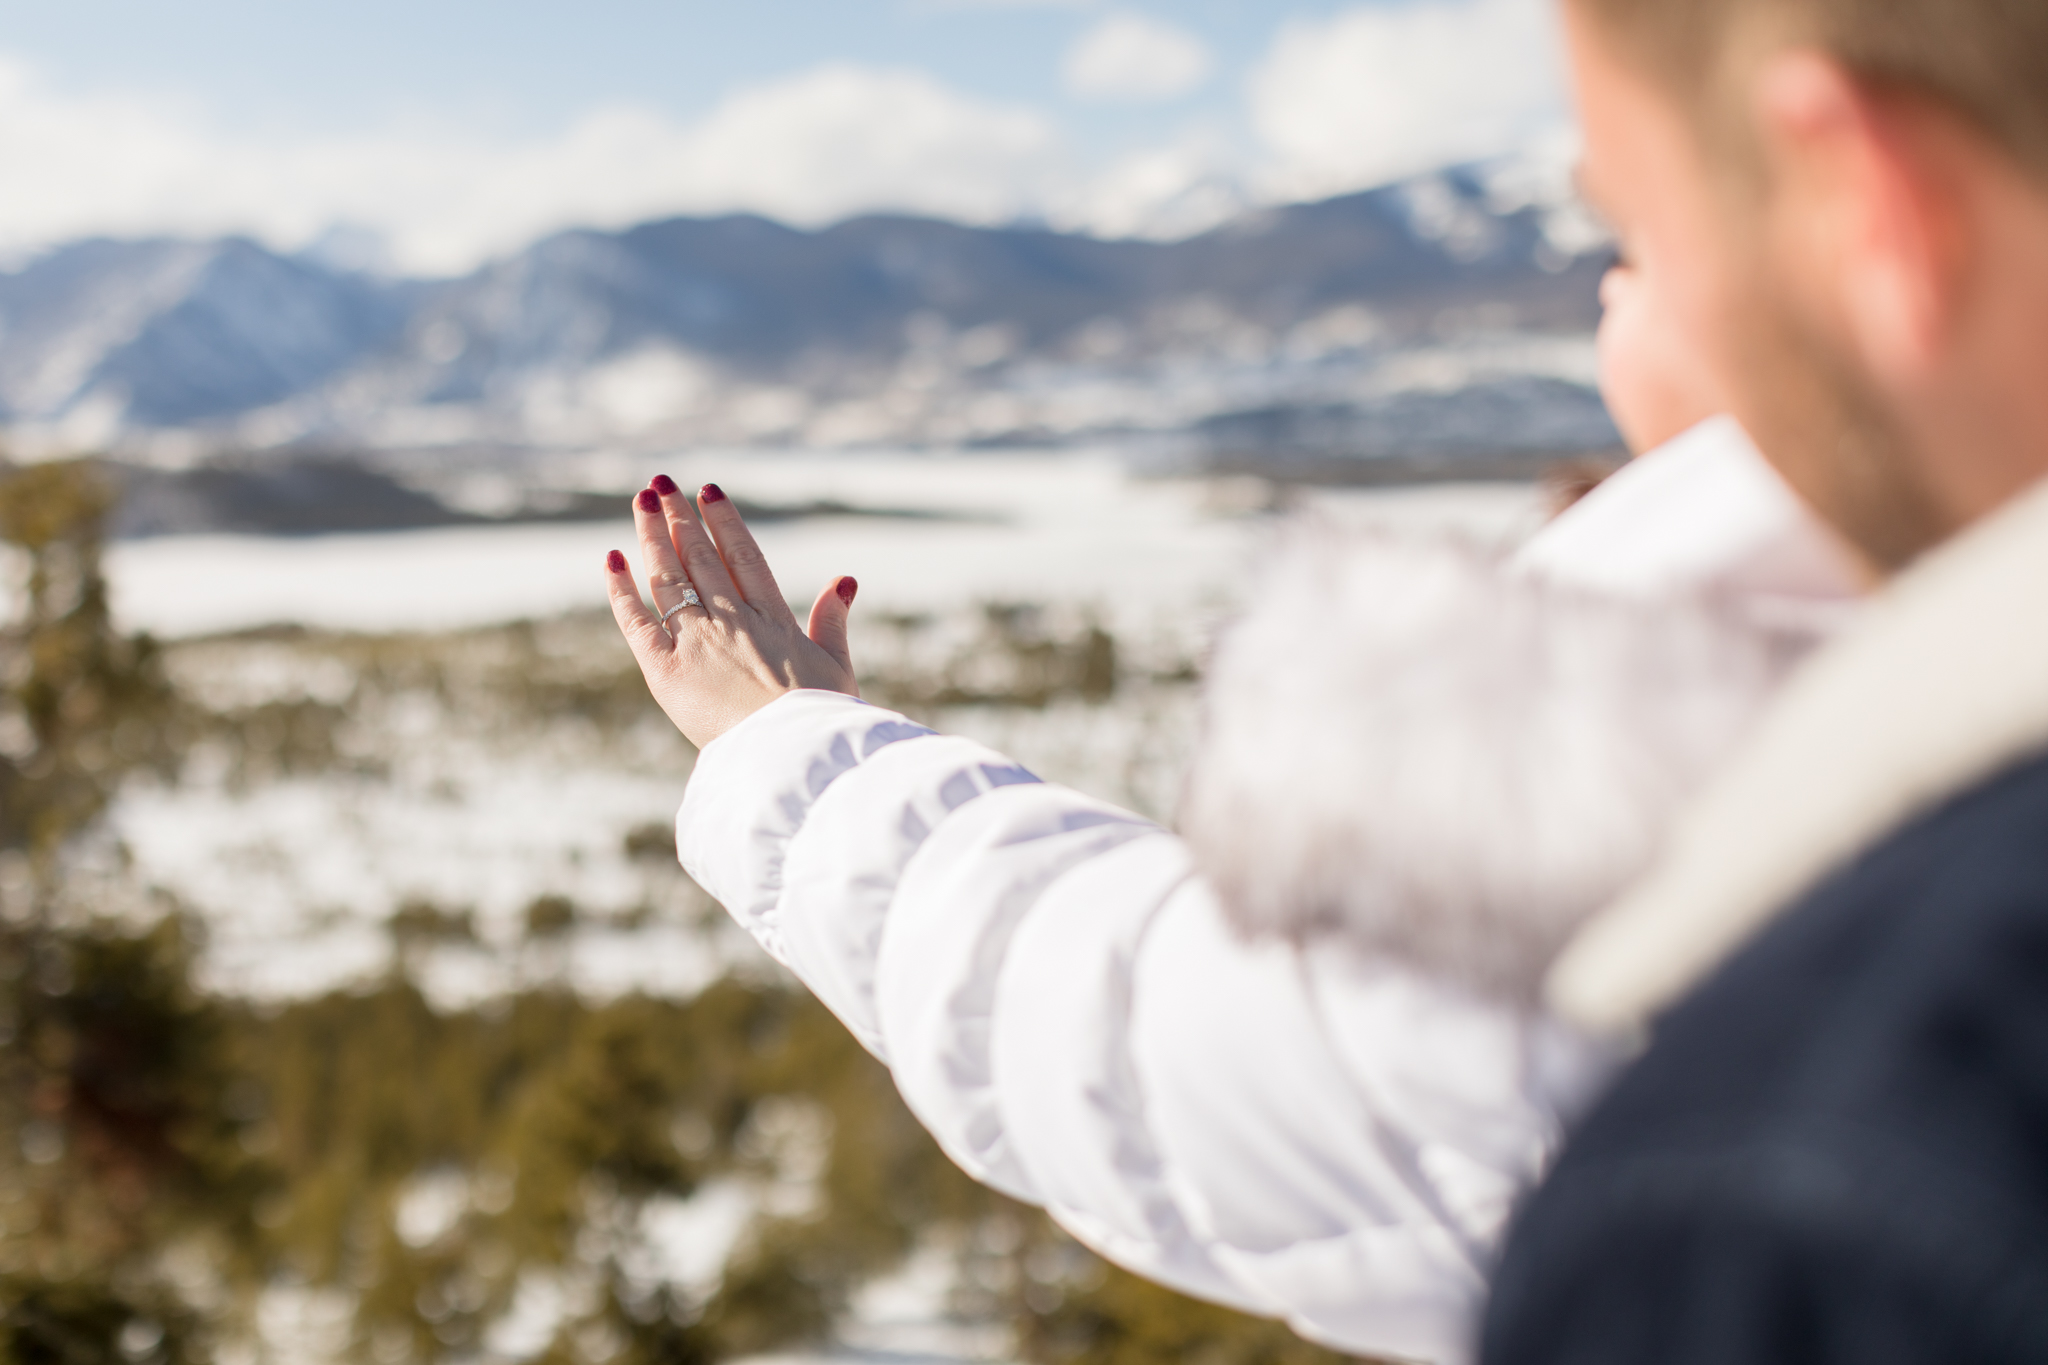 Tanner_and_Bryanna_Breckenridge_Proposal-8